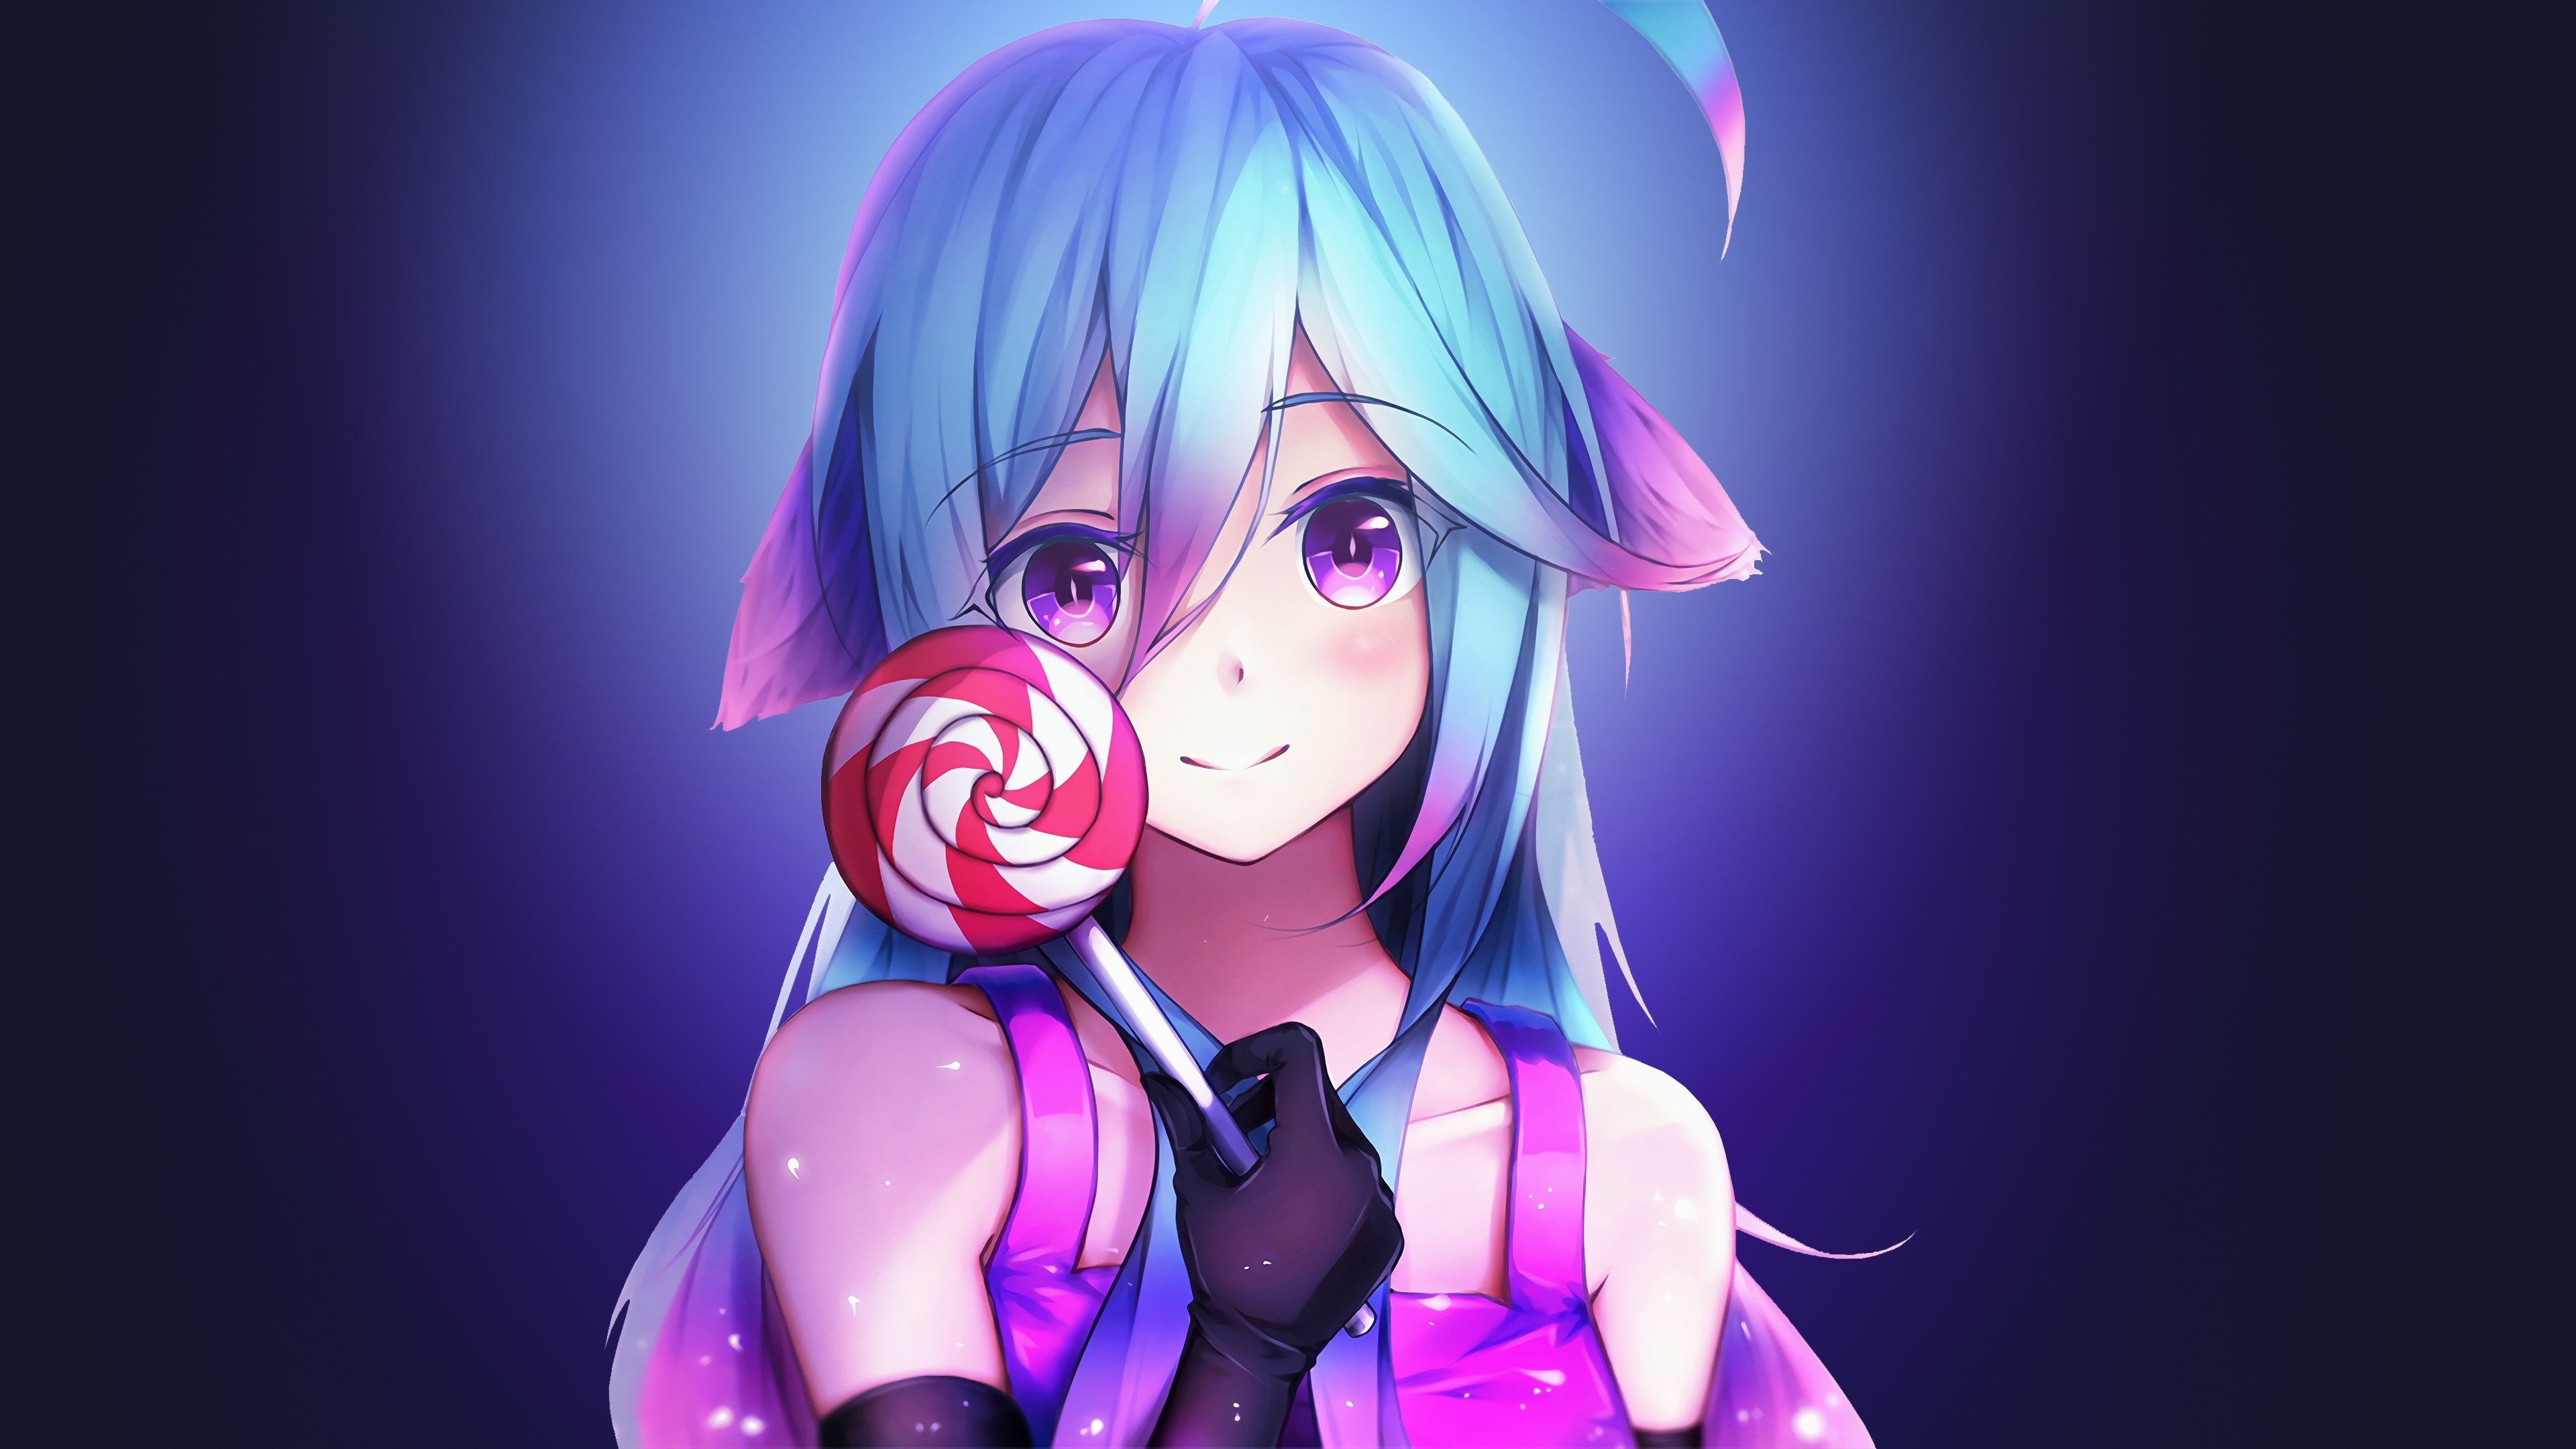 Pin On Wallpapers And Backgronds 31 resolution cool anime wallpaper 4k